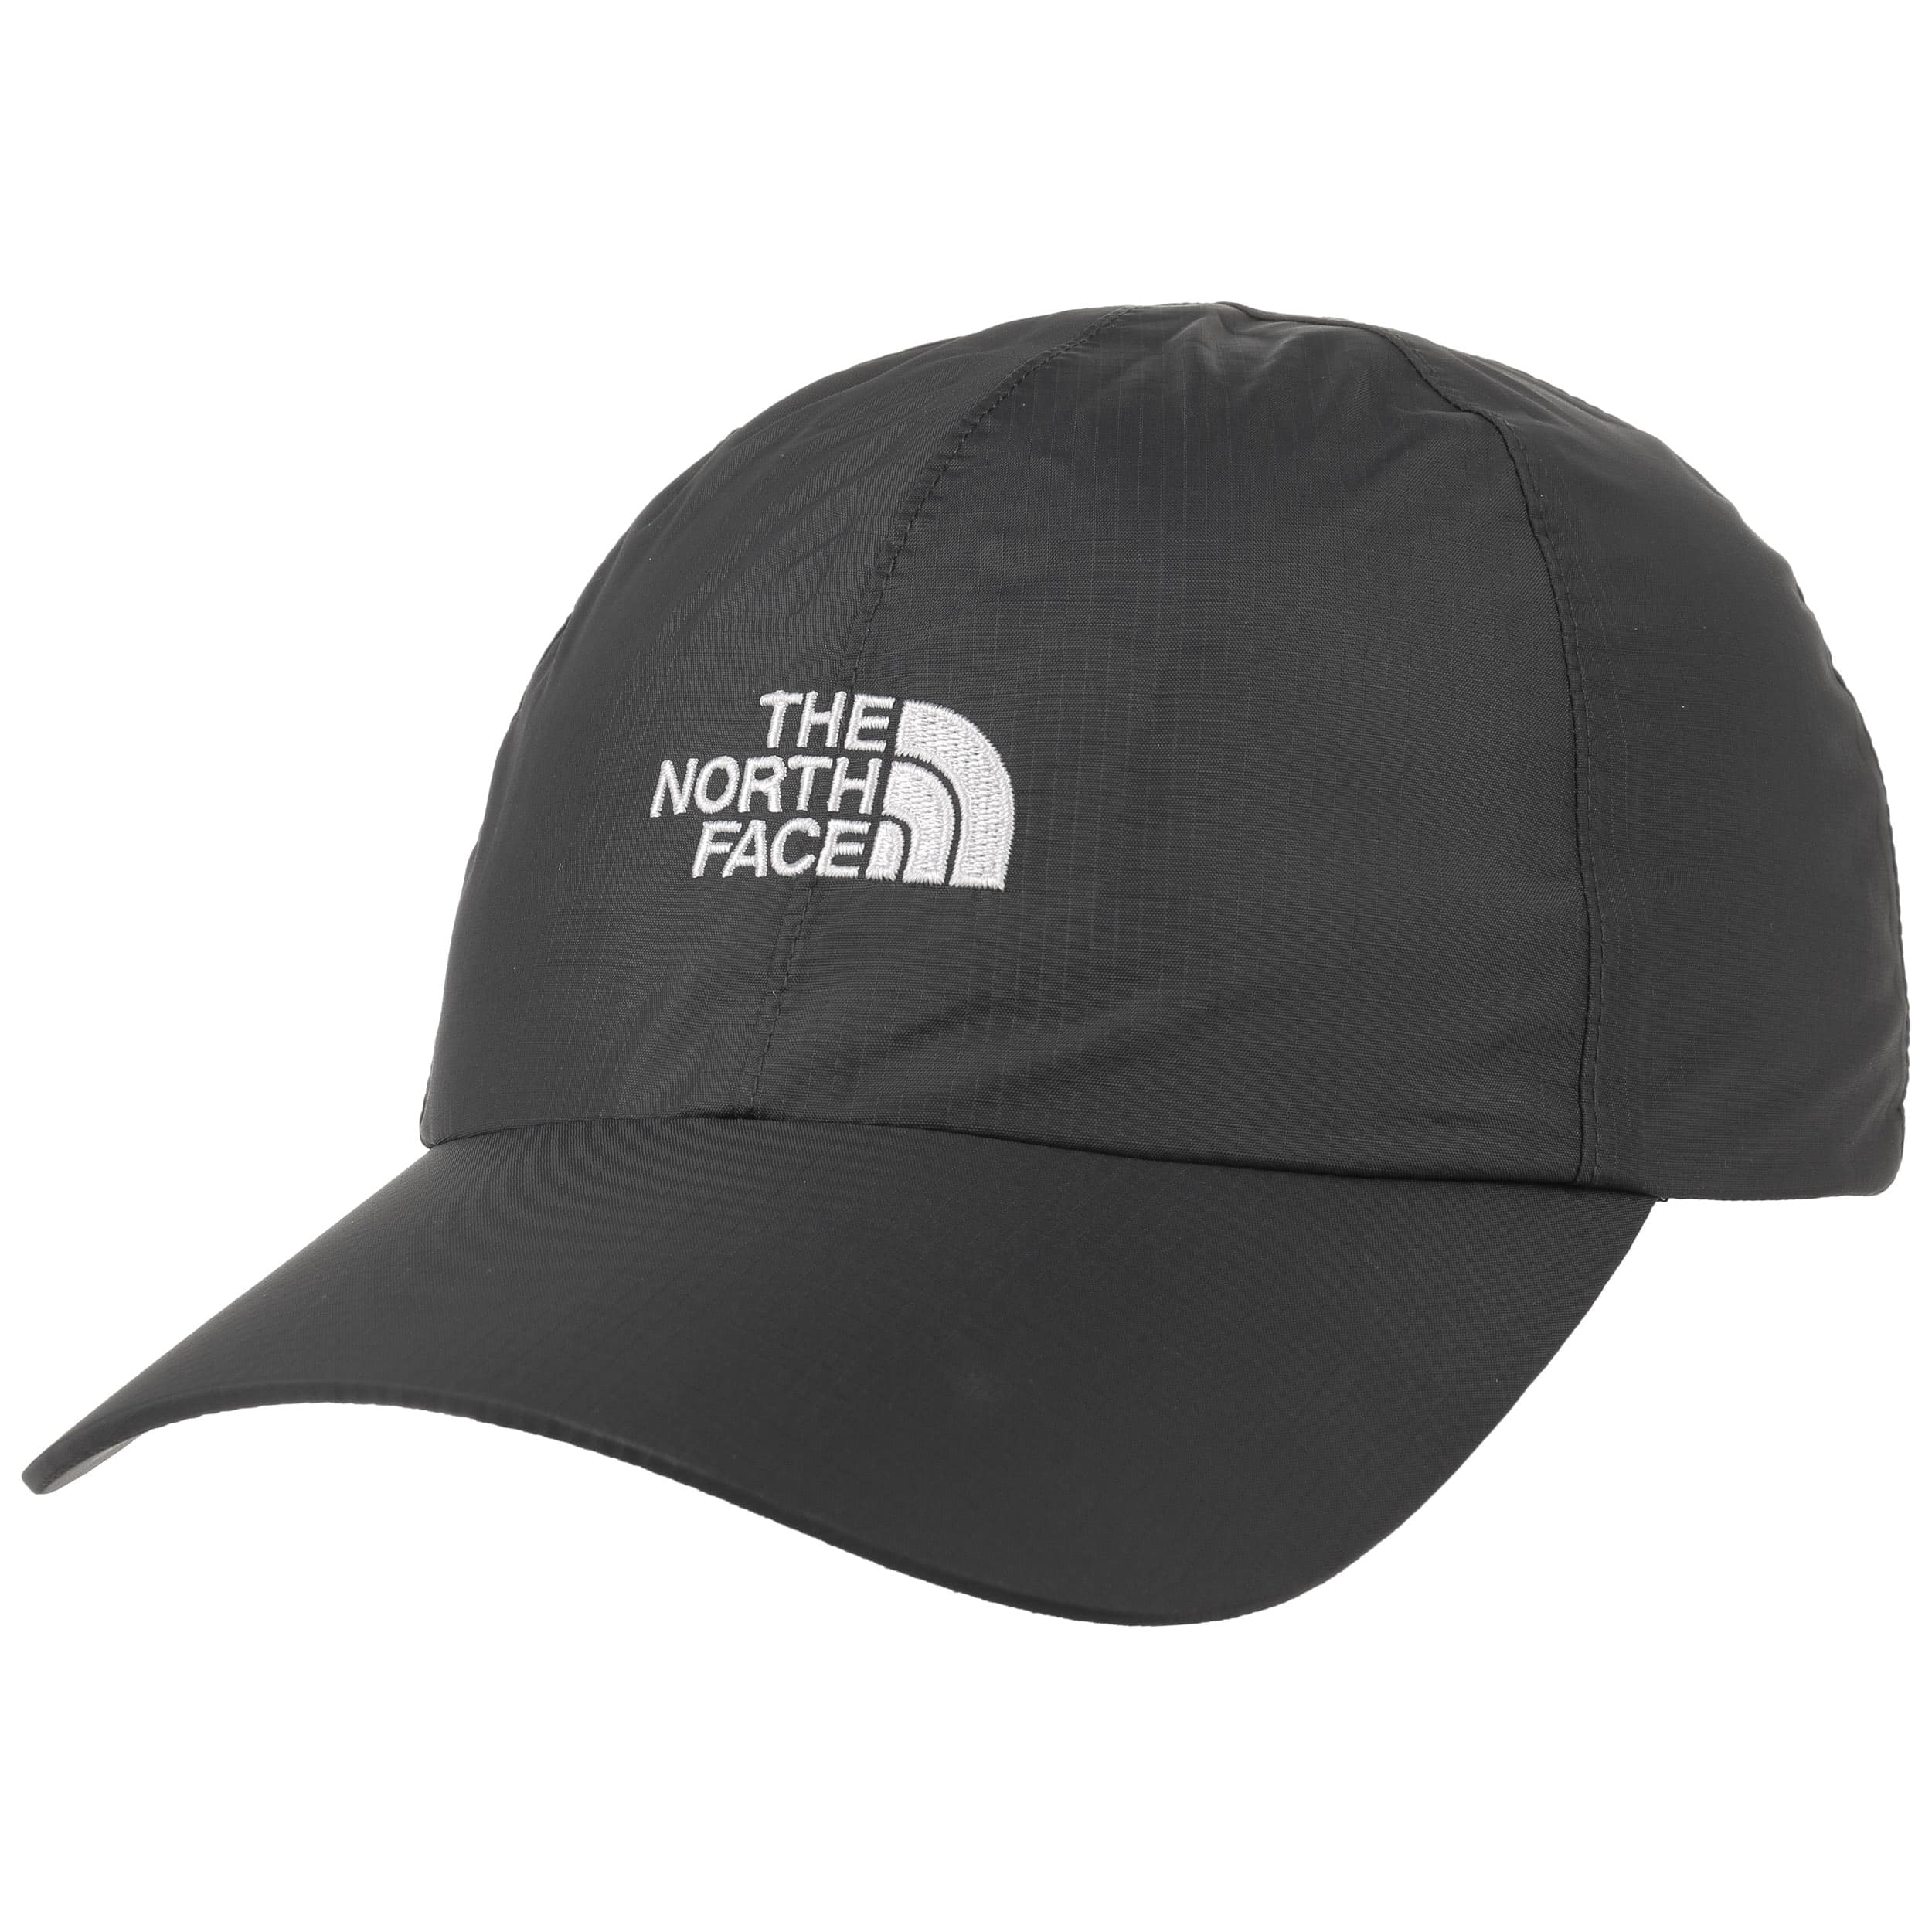 4a6f54c7536df Gorra Dryvent Logo by The North Face - Gorras - sombreroshop.es